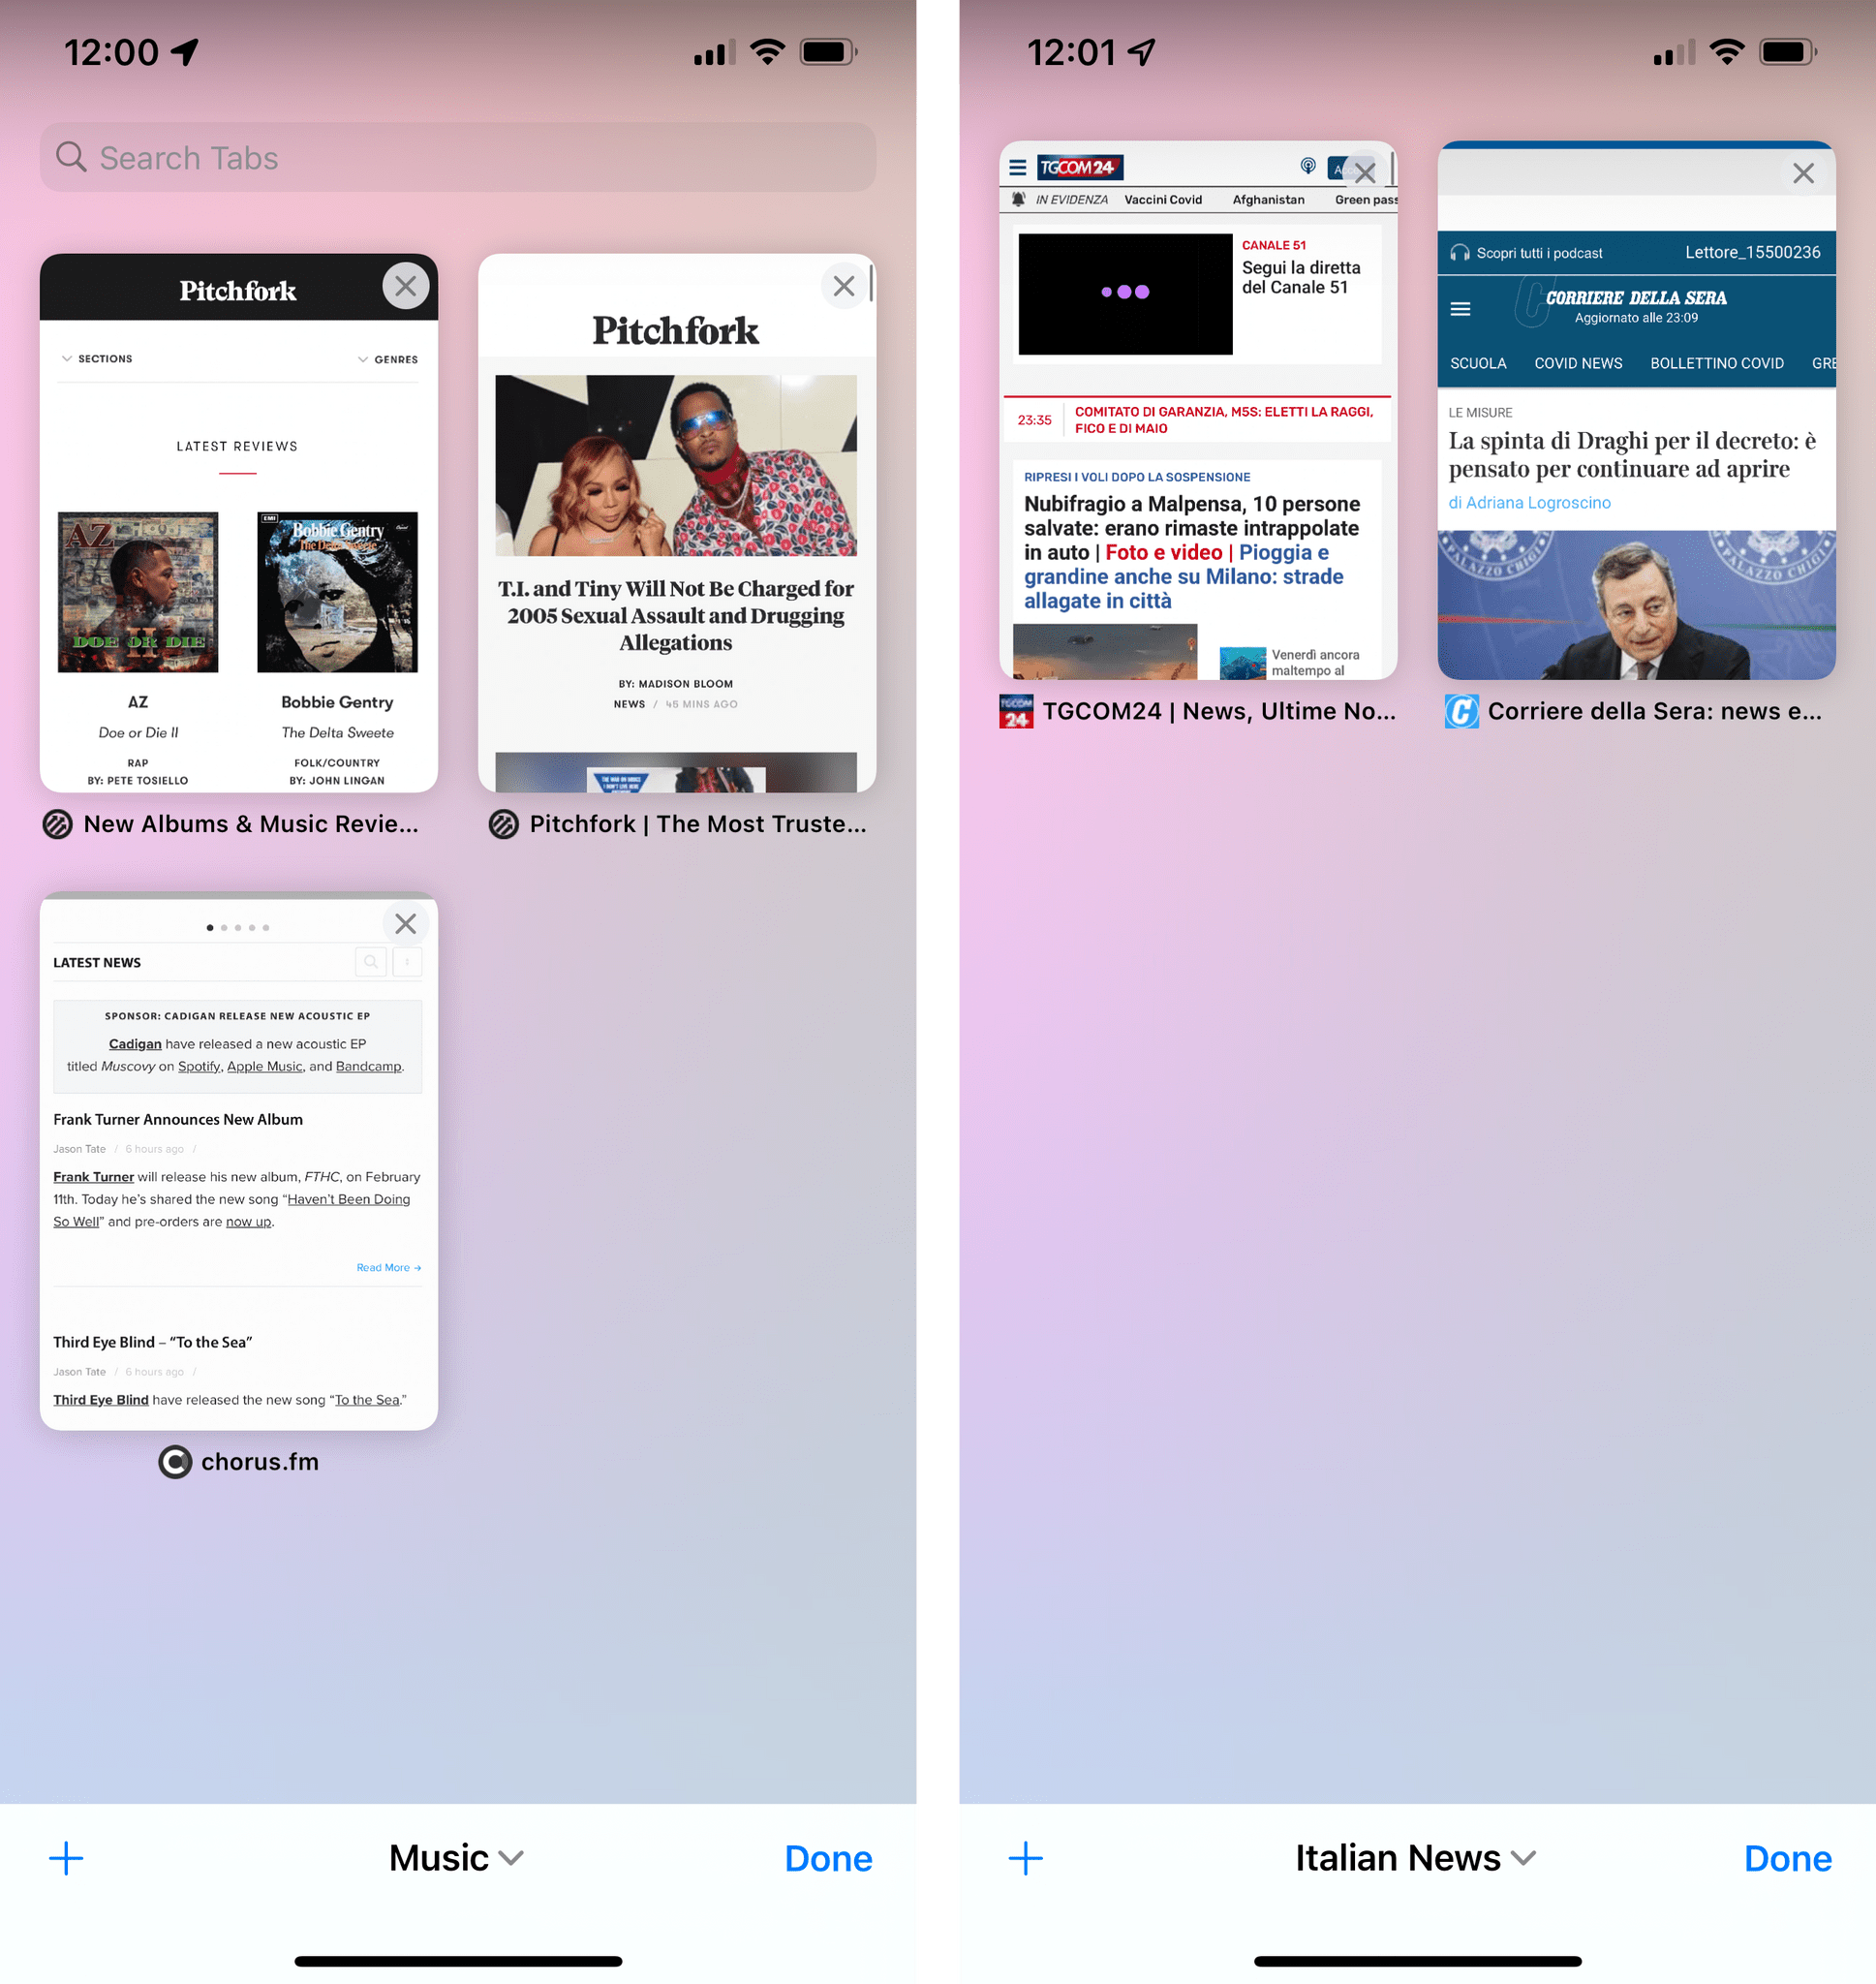 Tabs from different tab groups in iOS 15.